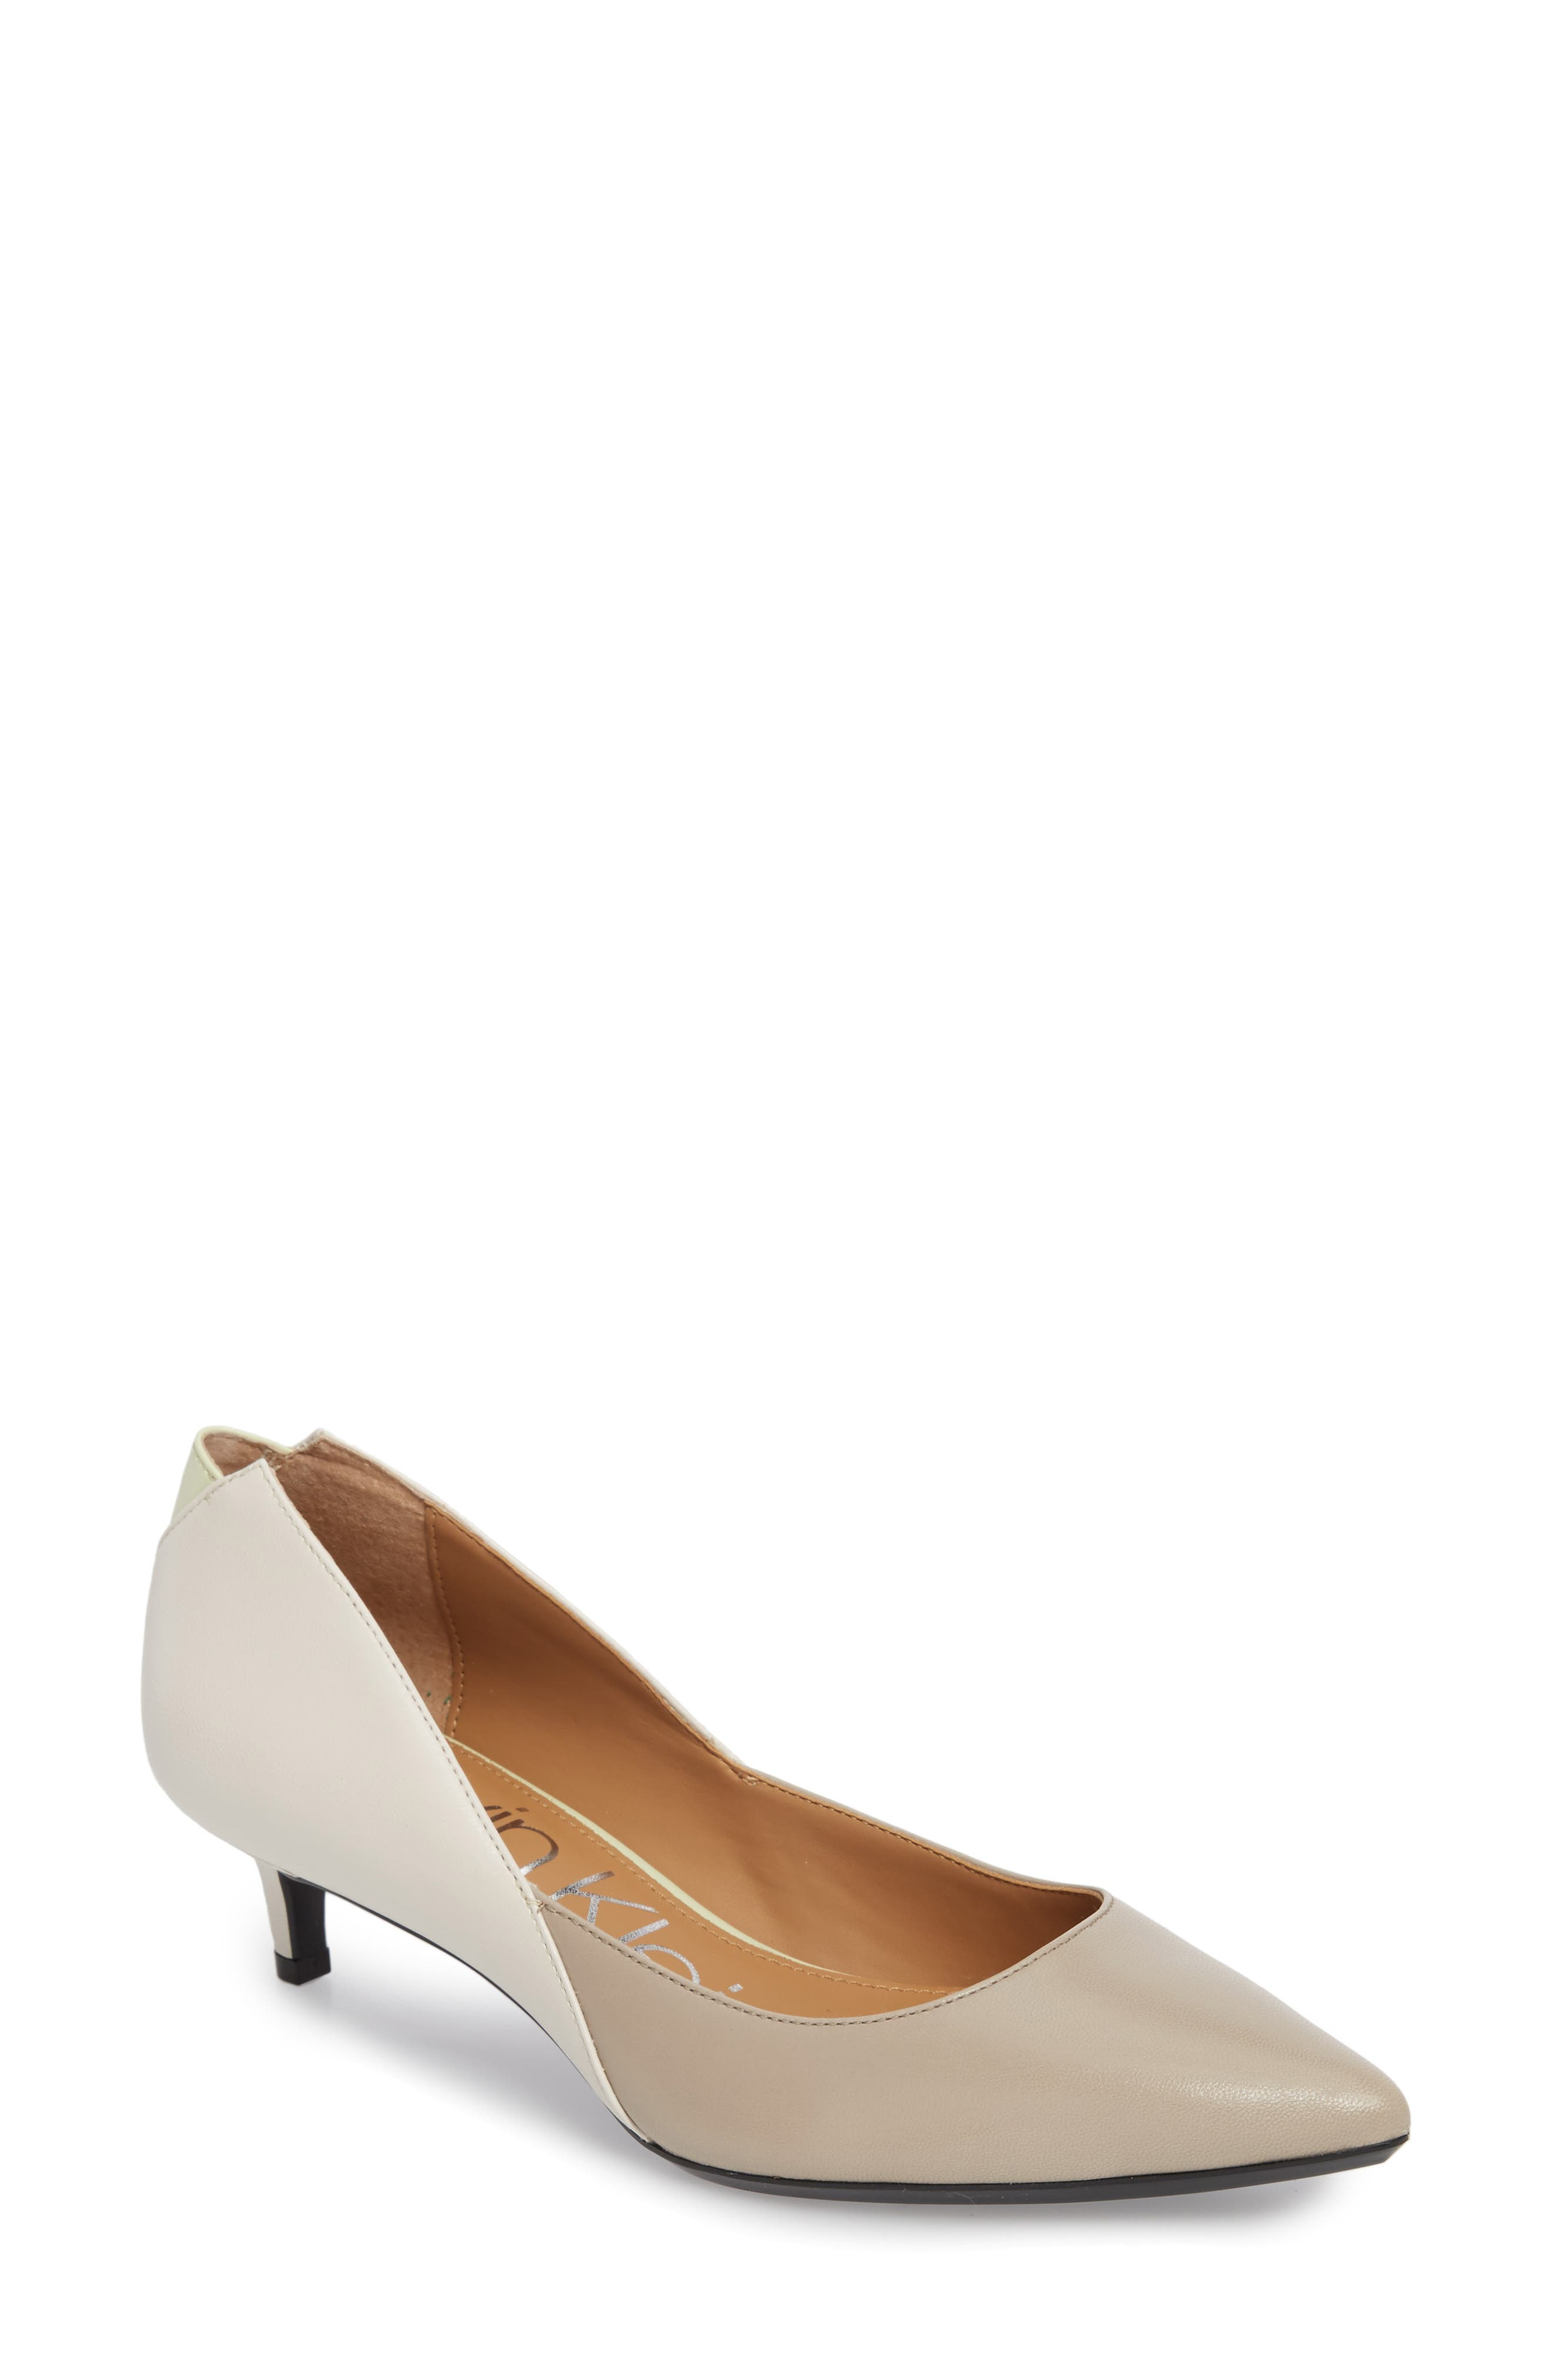 Grayce Pointy Toe Pump,                         Main,                         color, Clay/ White Leather